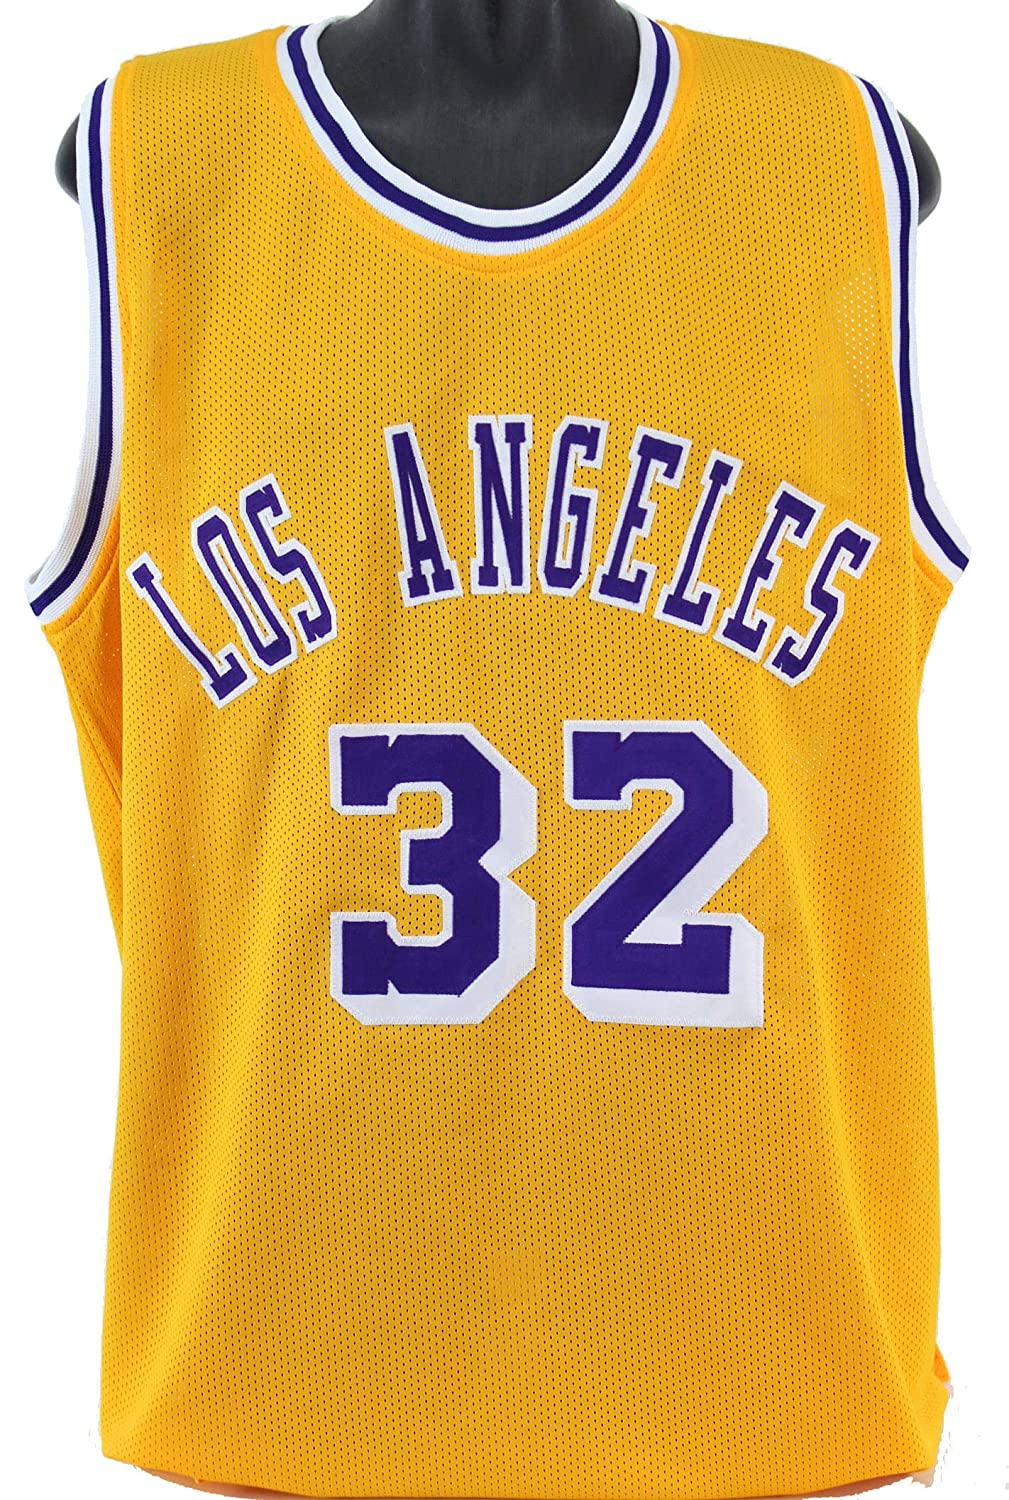 17c4e420198 Lakers Magic Johnson Authentic Signed Yellow Jersey Autographed BAS  Witnessed 1 at Amazon s Sports Collectibles Store